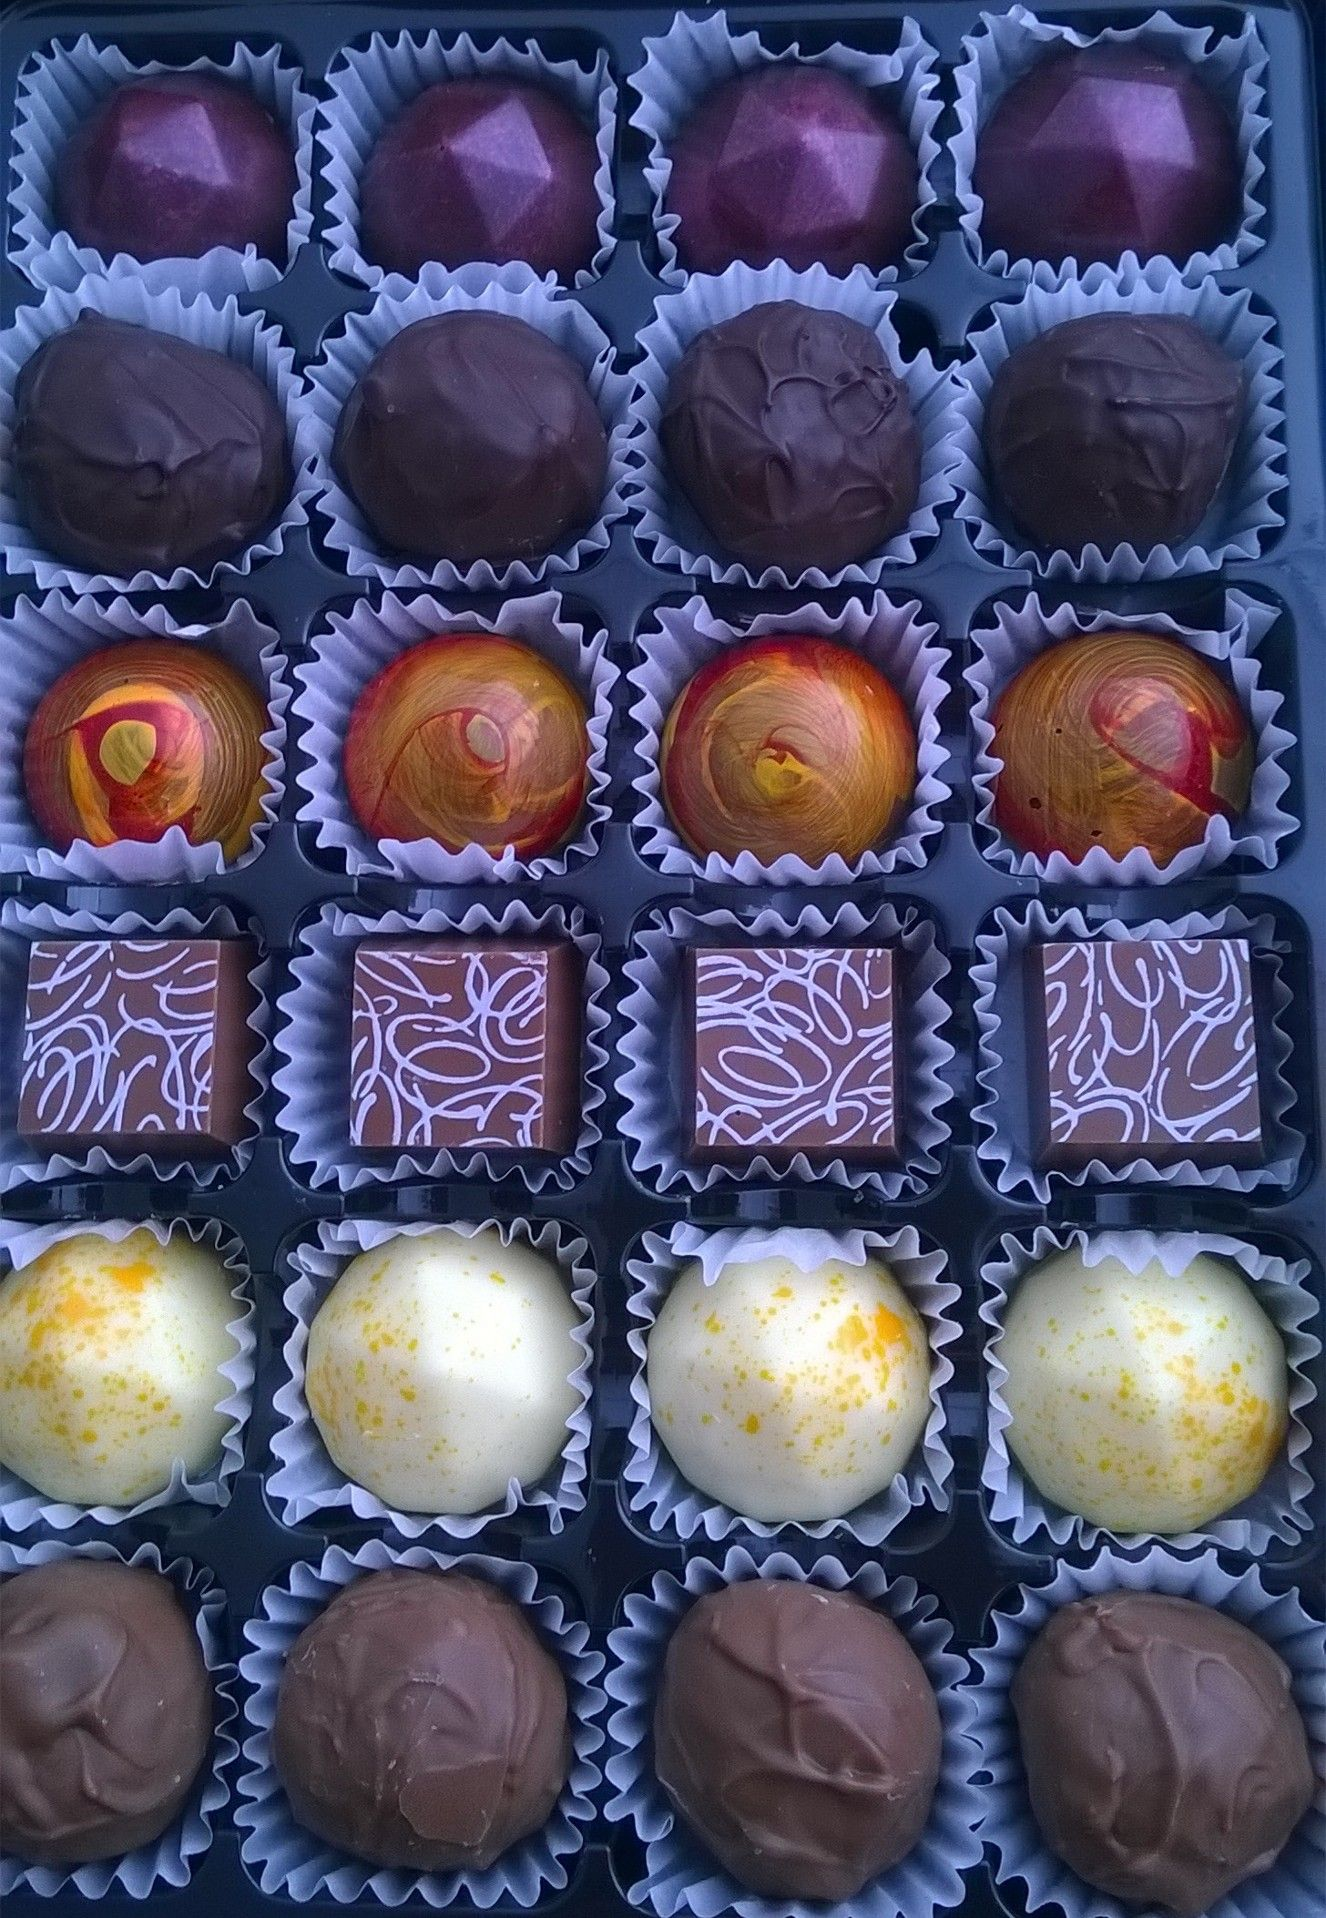 Selection of handmade chocolates - available on the North Coast 500